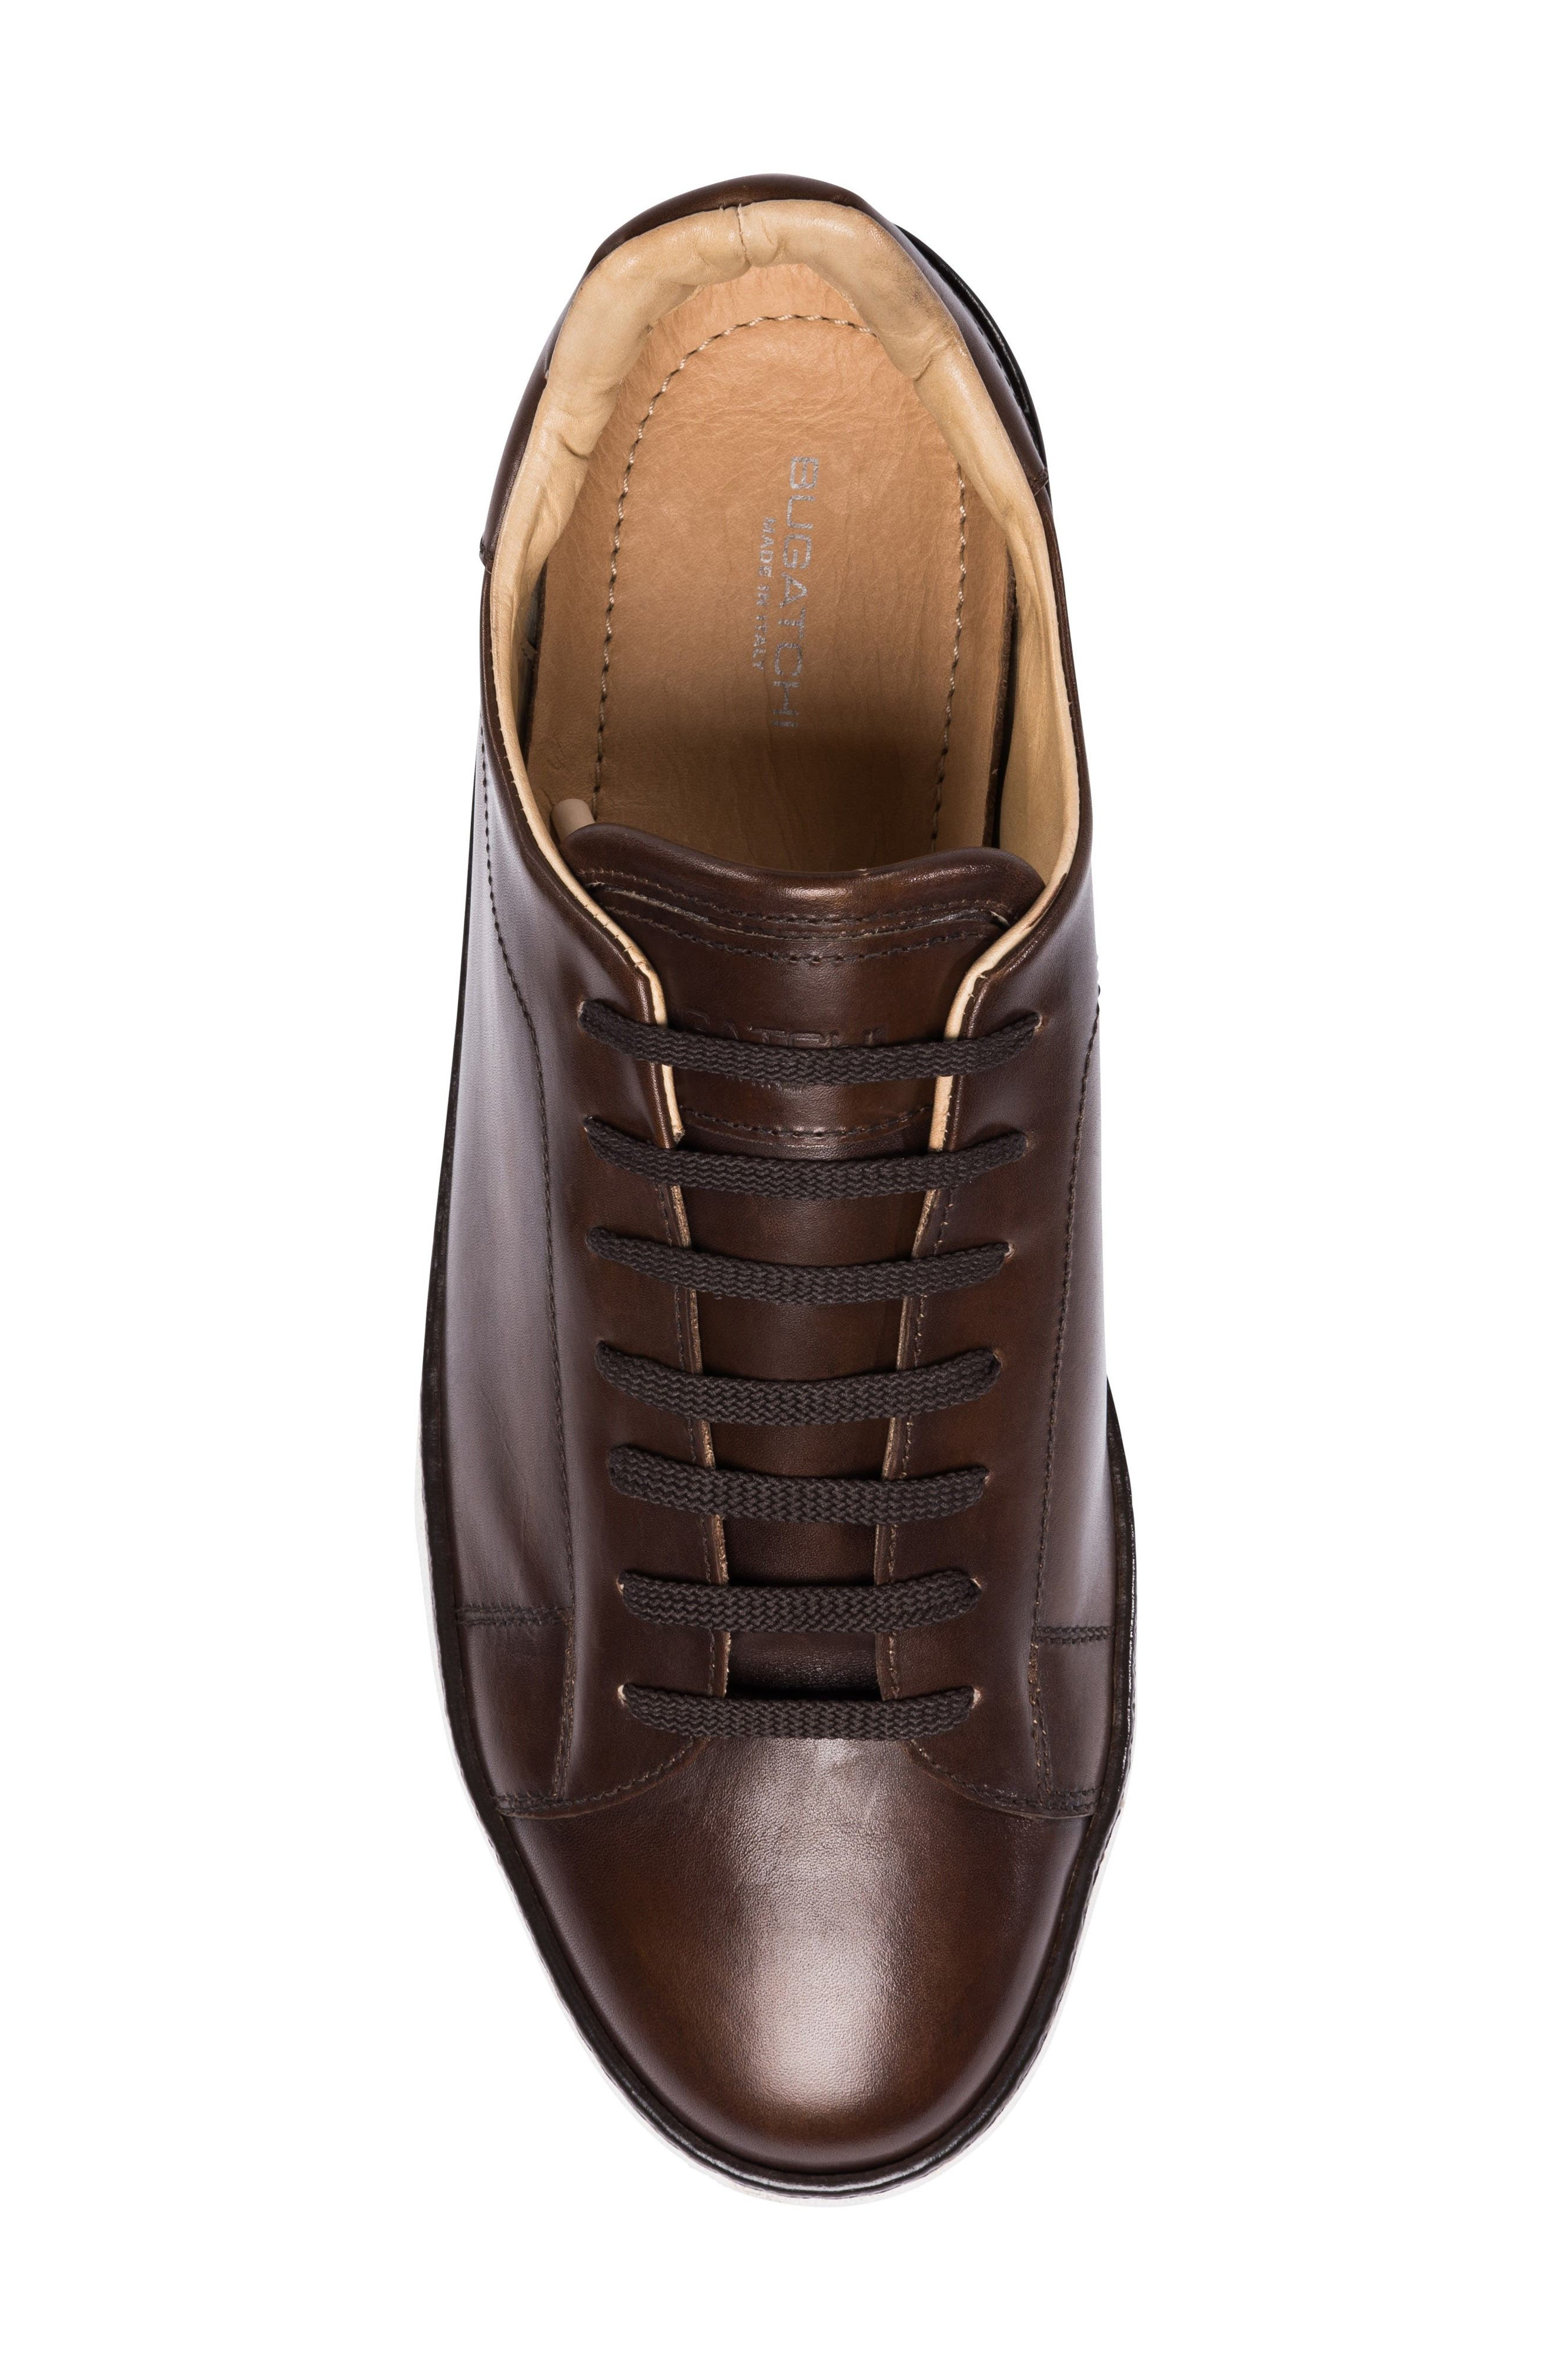 Firenze Low Top Sneaker,                             Alternate thumbnail 5, color,                             Burgundy Leather